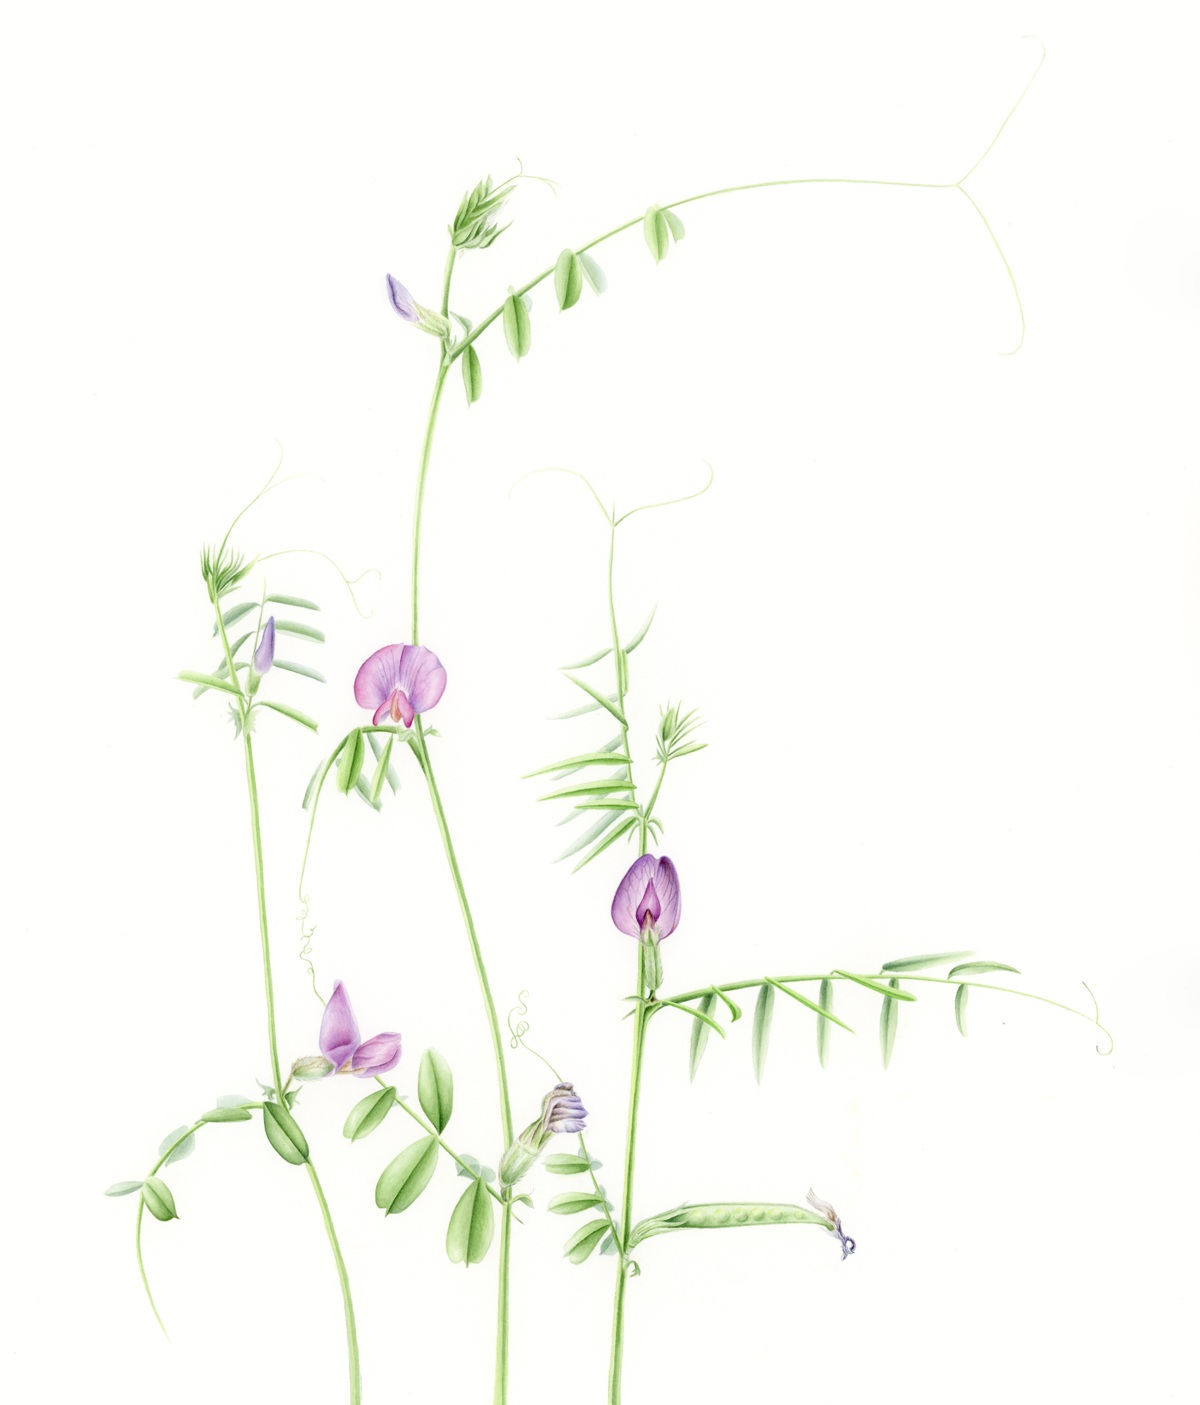 Common Vetch - Vicia sativaI found these charming little vines to be so delightful to learn about and draw. They are found globally, in their own variations; some with several blooms on each stem down to this singular version found here in the Pacific Northwest. They like sunny clearings and bloom in May, followed by the small (inedible) pea pods.original, 14x18